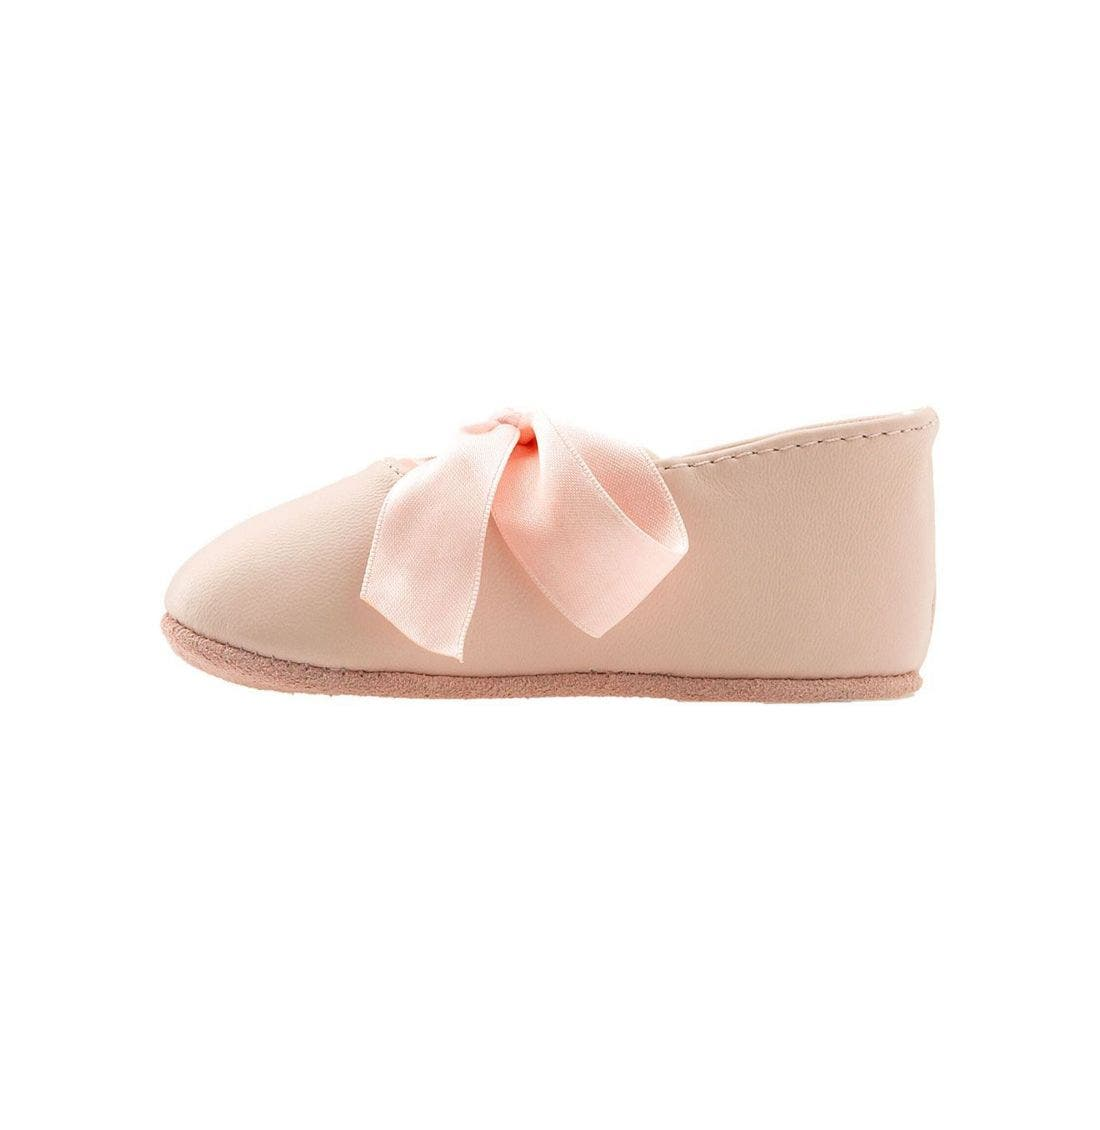 Layette 'Briley' Shoe,                             Alternate thumbnail 2, color,                             Pink Lambskin